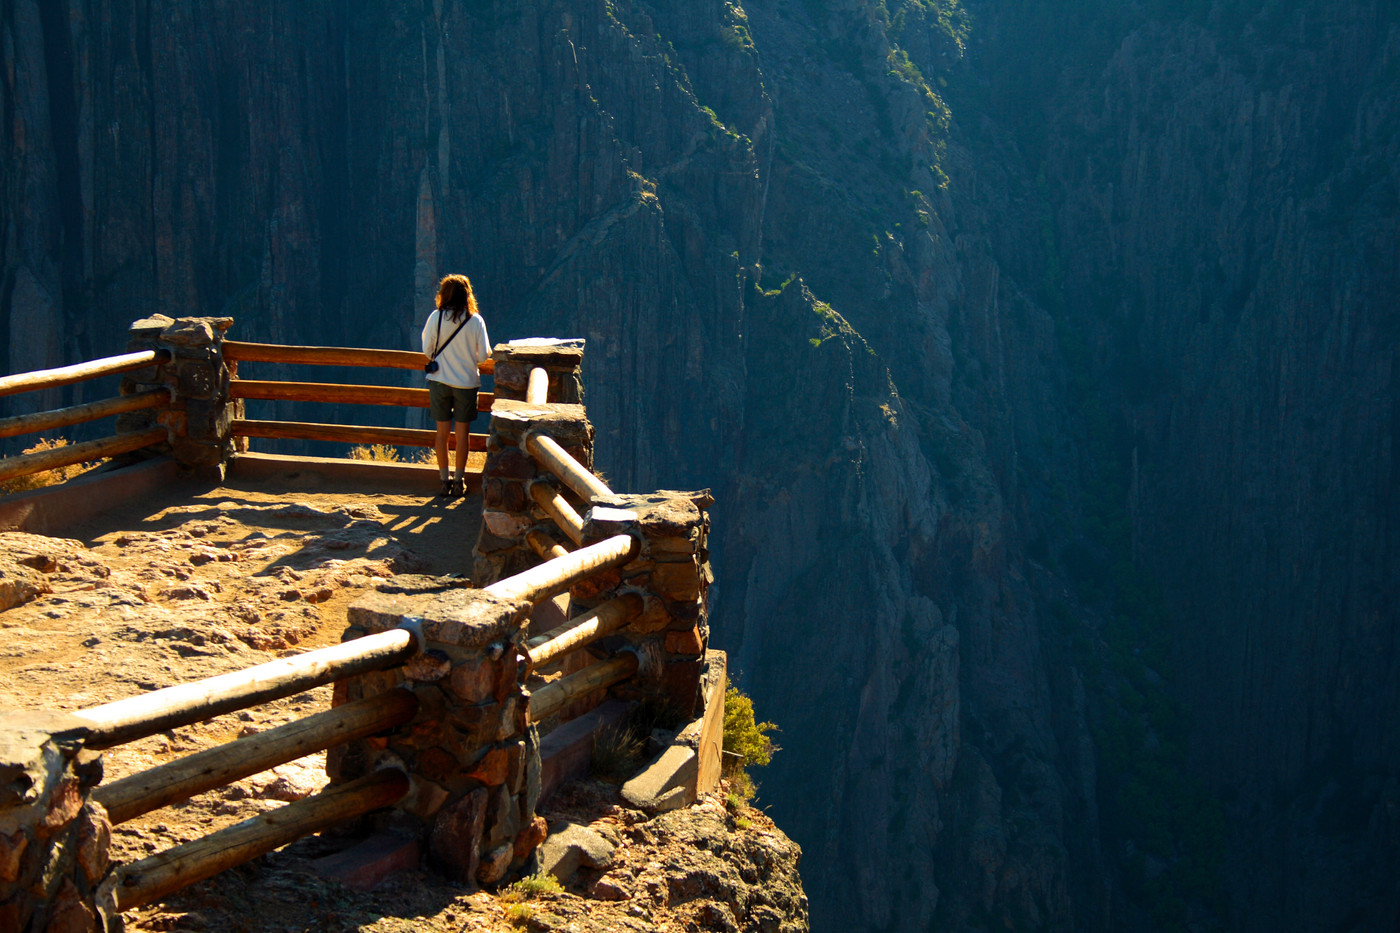 Black Canyon of the Gunnison National Park,